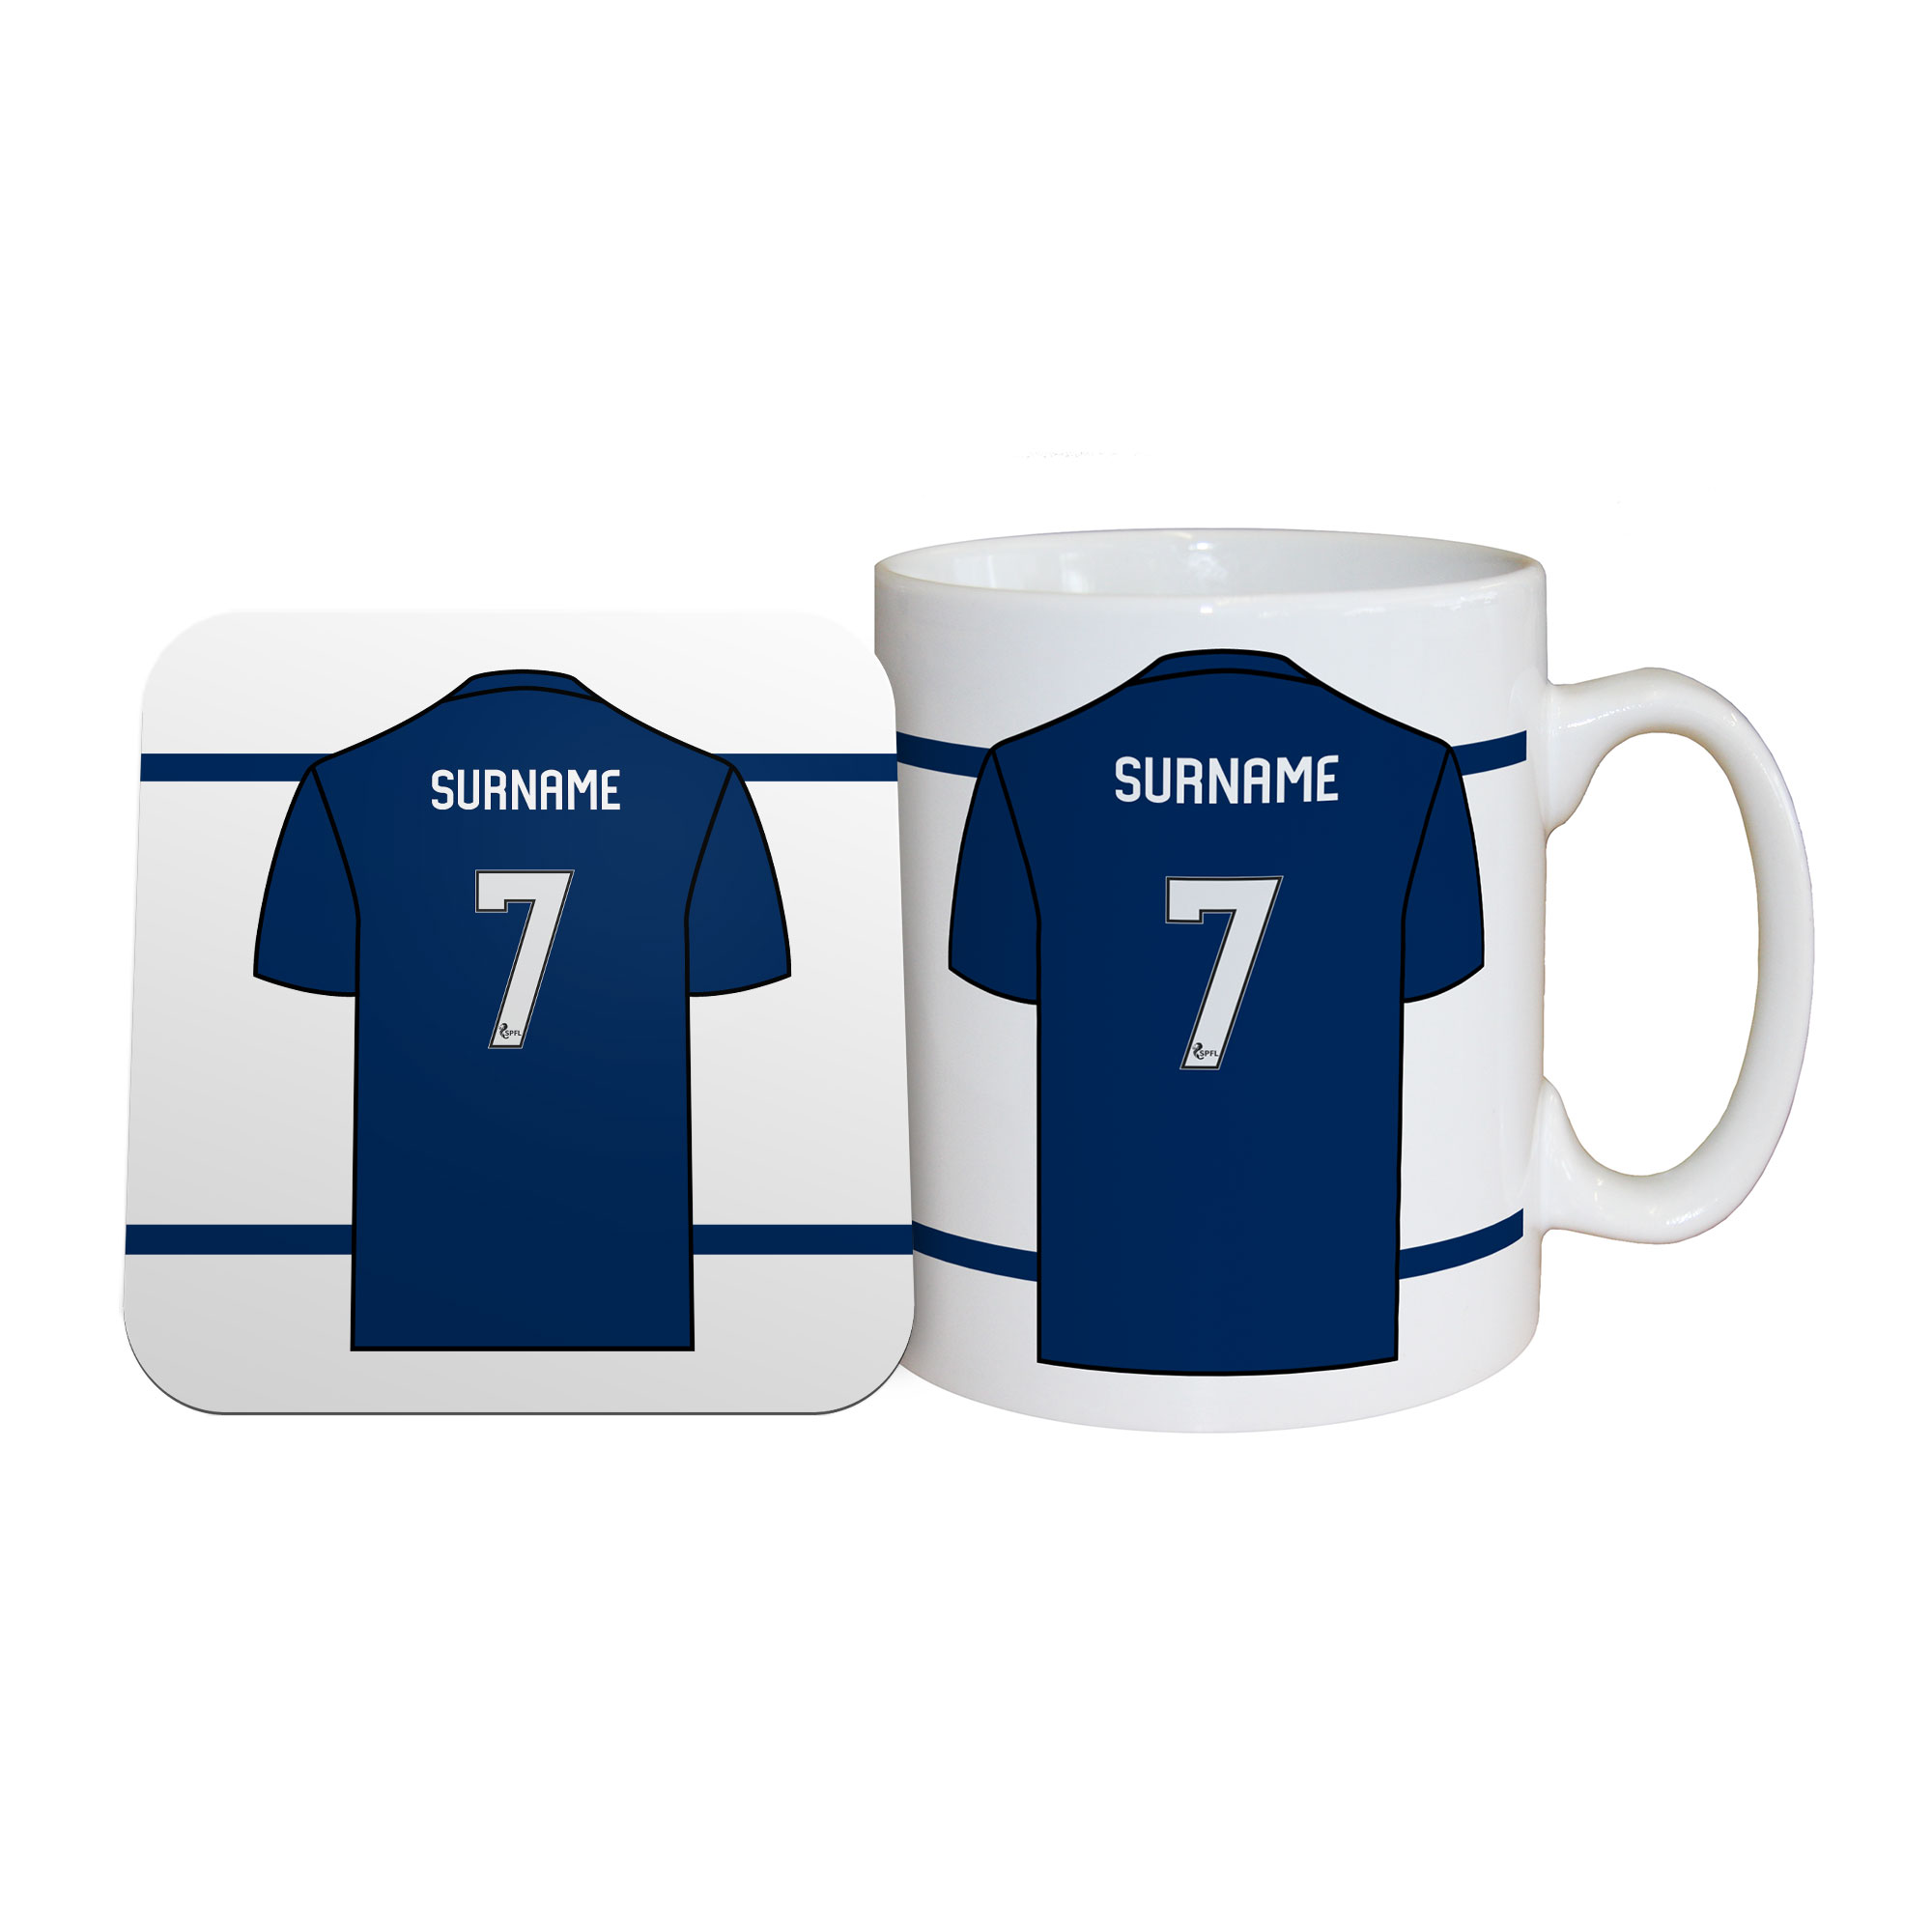 Dundee FC Shirt Mug & Coaster Set